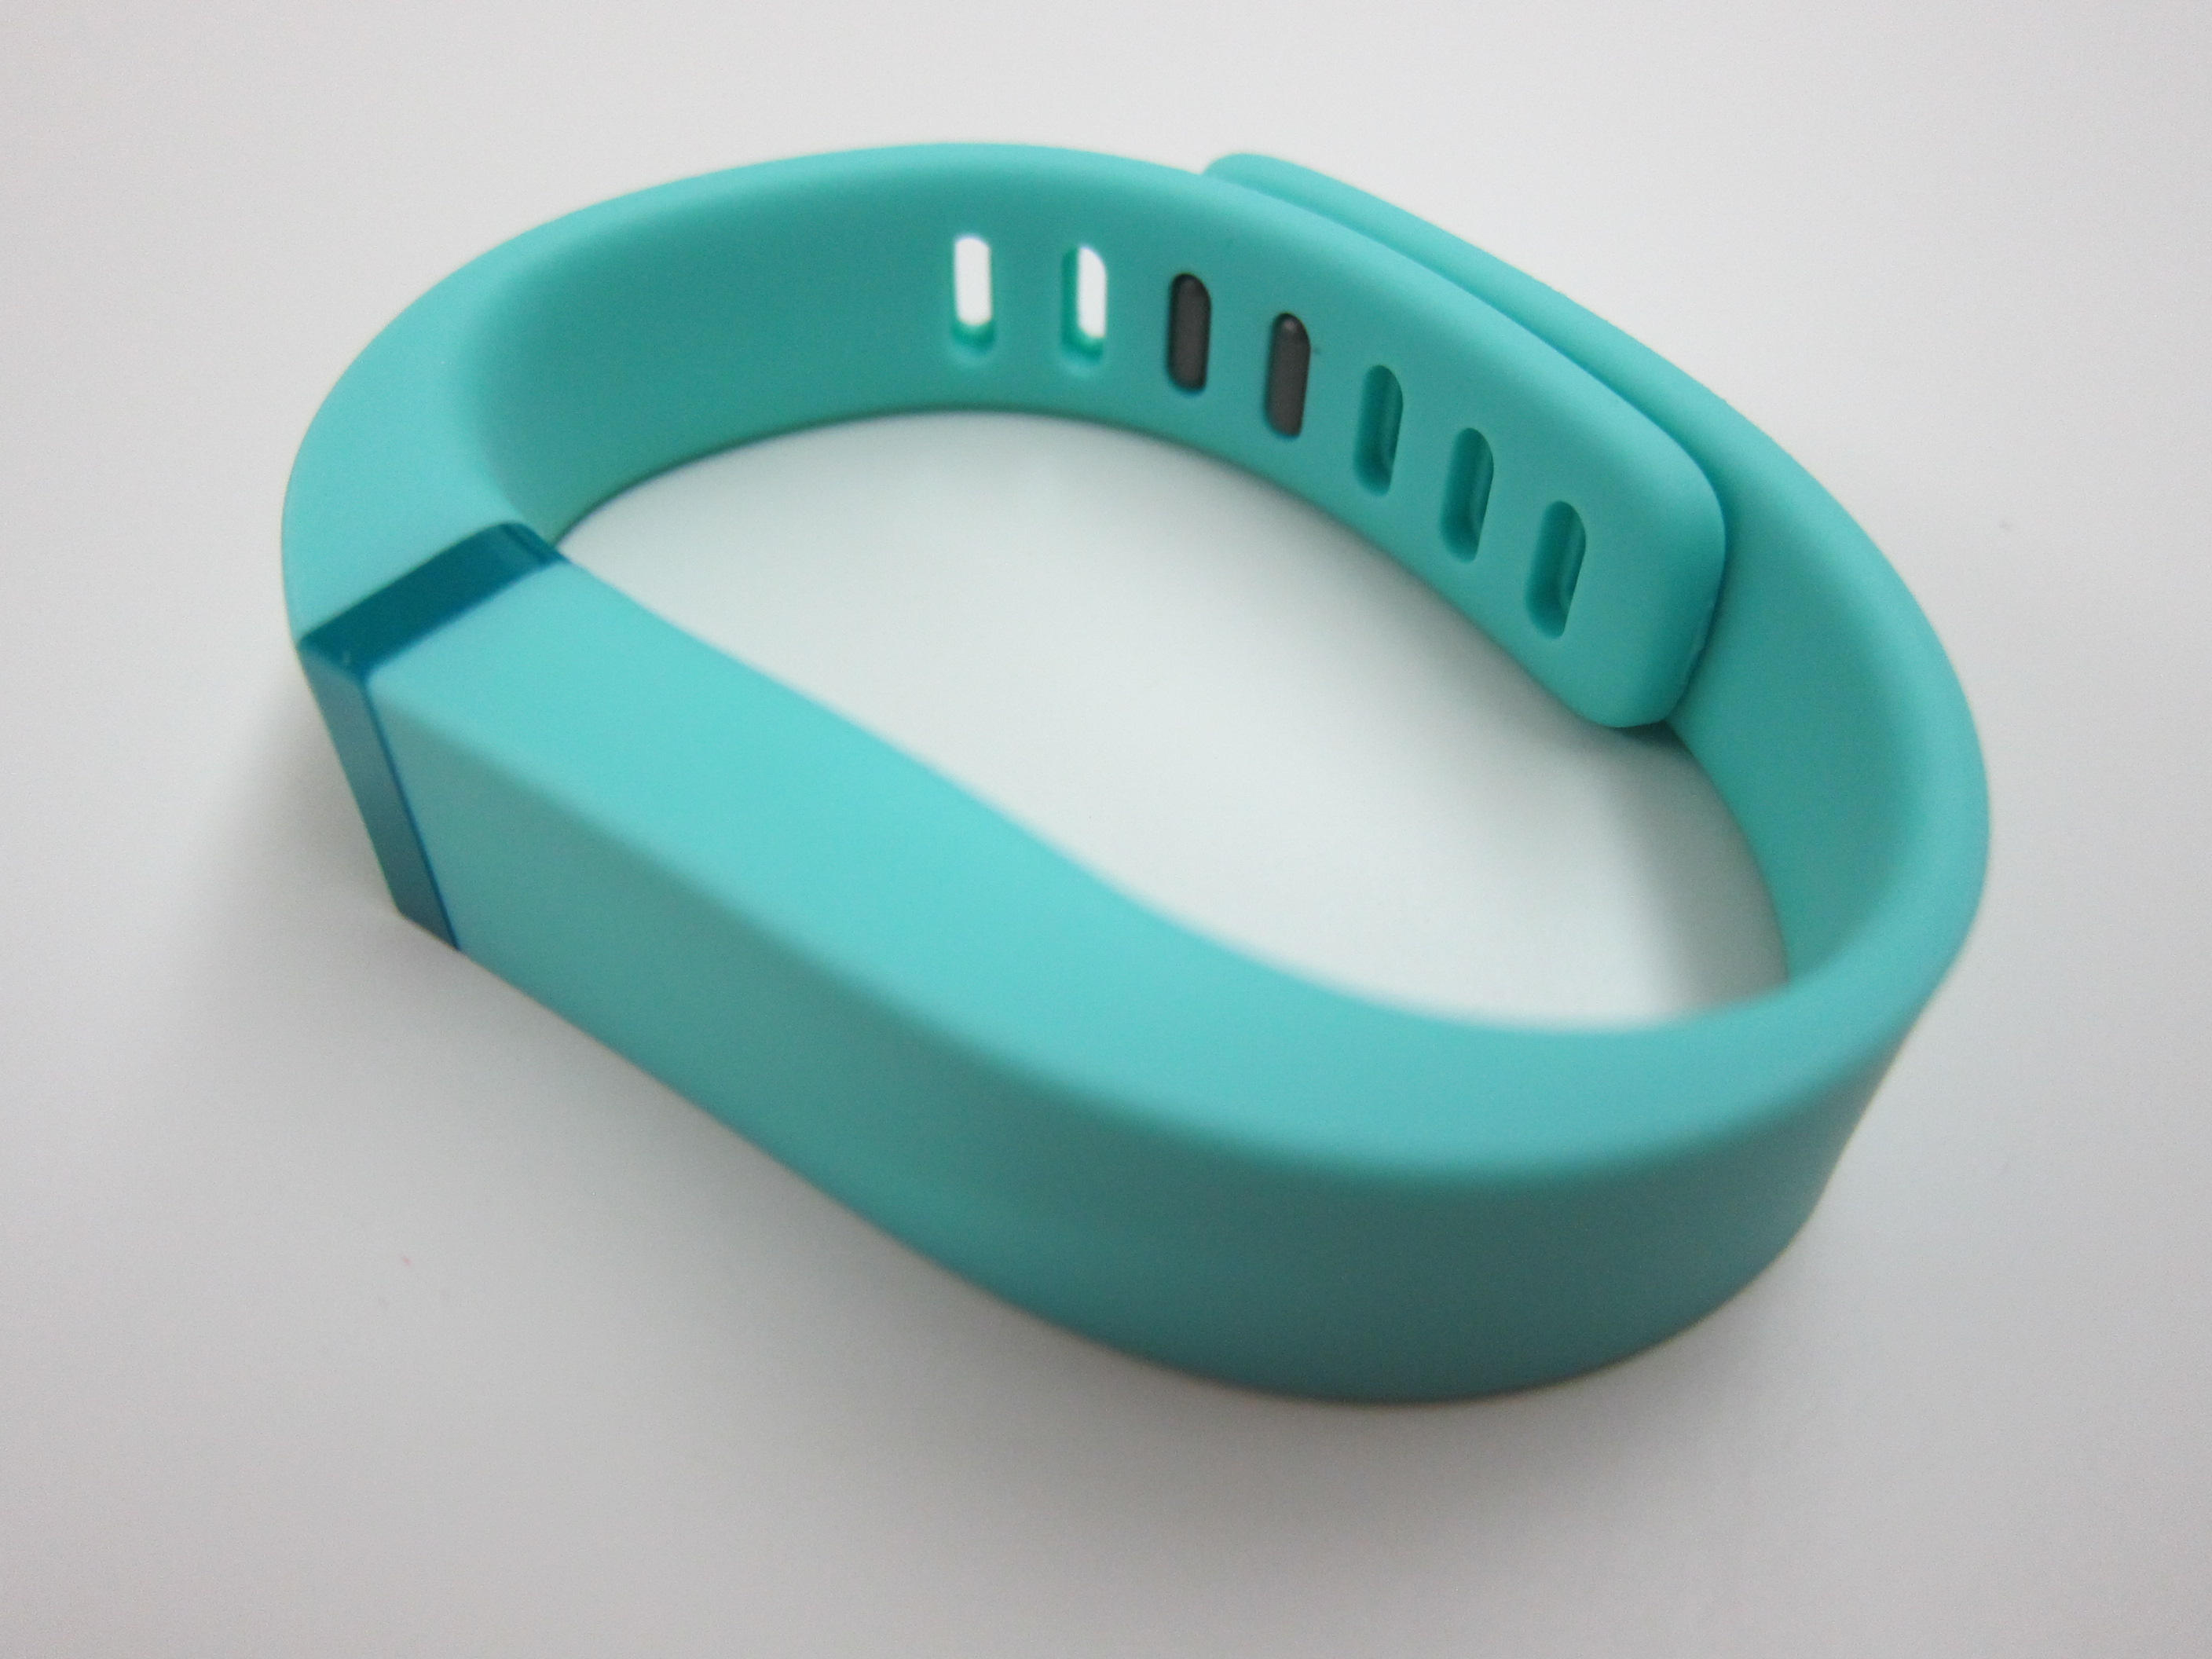 how to set up fitbit flex on ipad